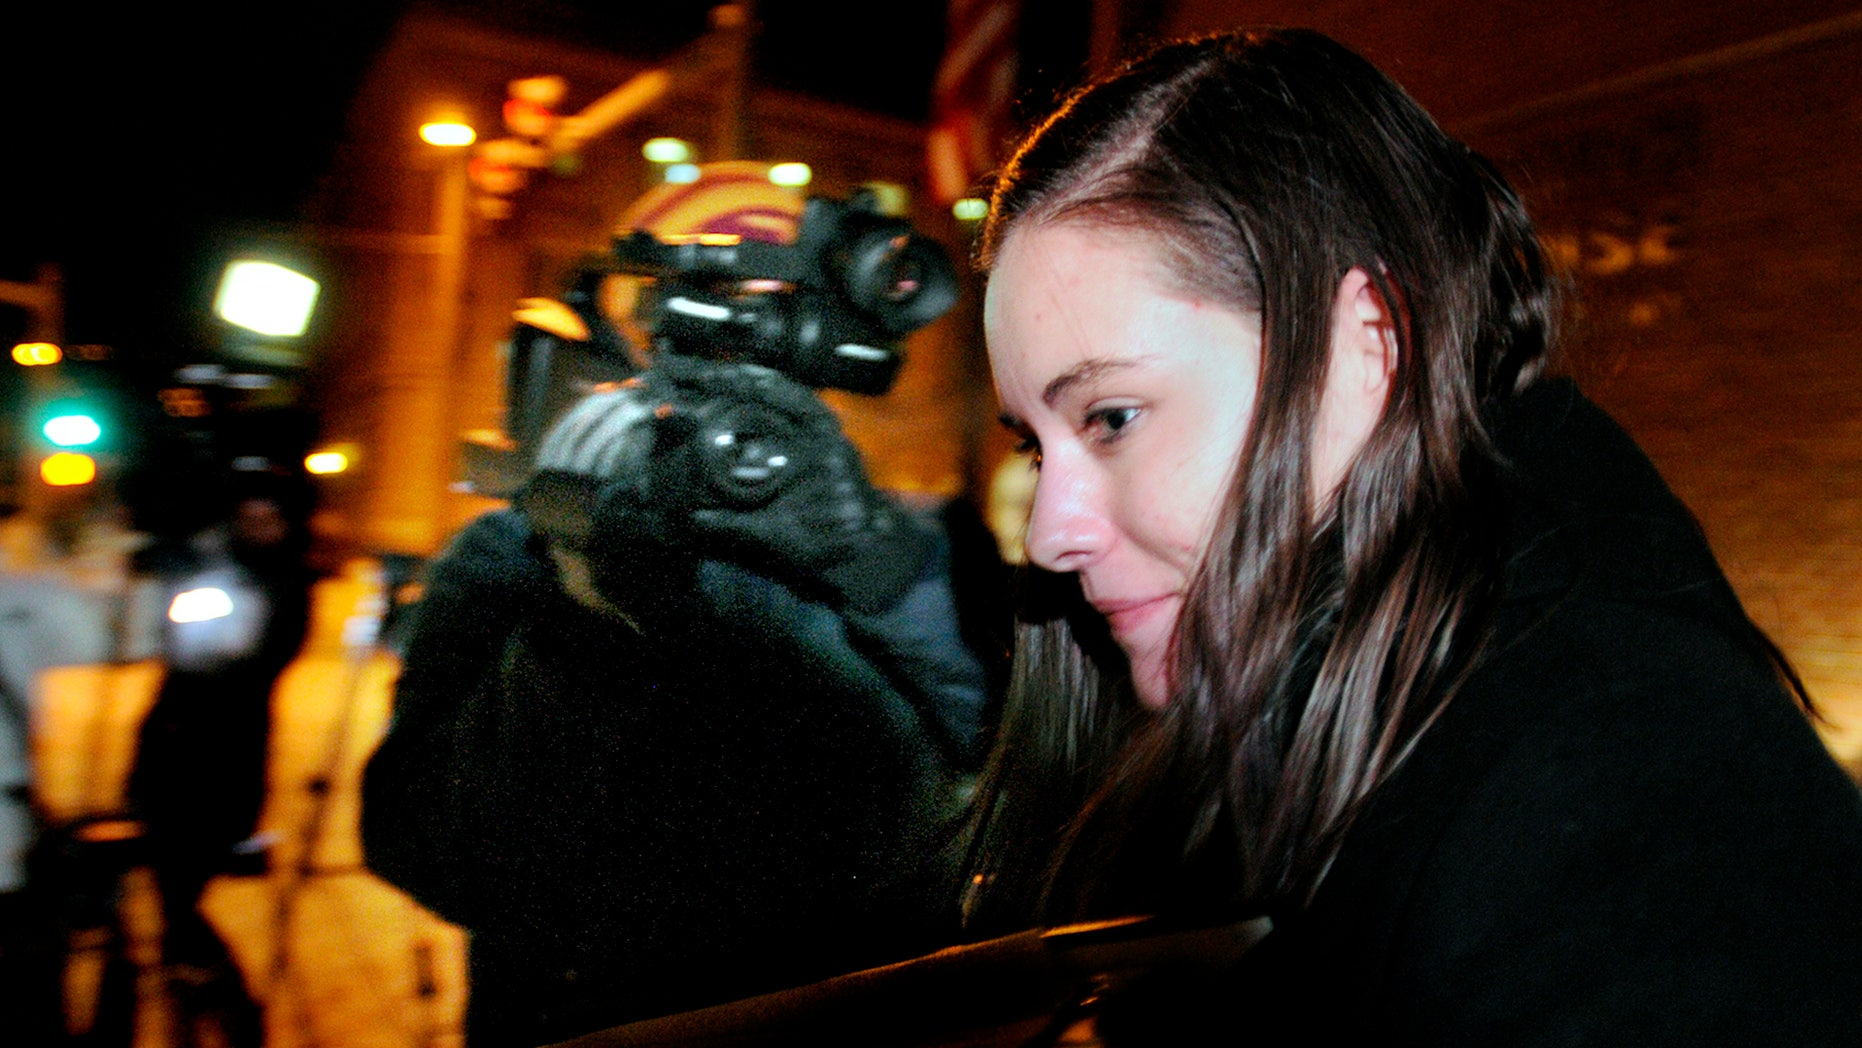 Jordan Graham leaves the Federal Courthouse in Missoula, Mont., Monday, Dec. 9, 2013 after the first day of her murder trial. Graham, 22, is accused of murdering Cody Johnson, her husband of eight days, by pushing him off a cliff in Glacier National Park on July 7. (AP Photo/Missoulian, Kurt Wilson)